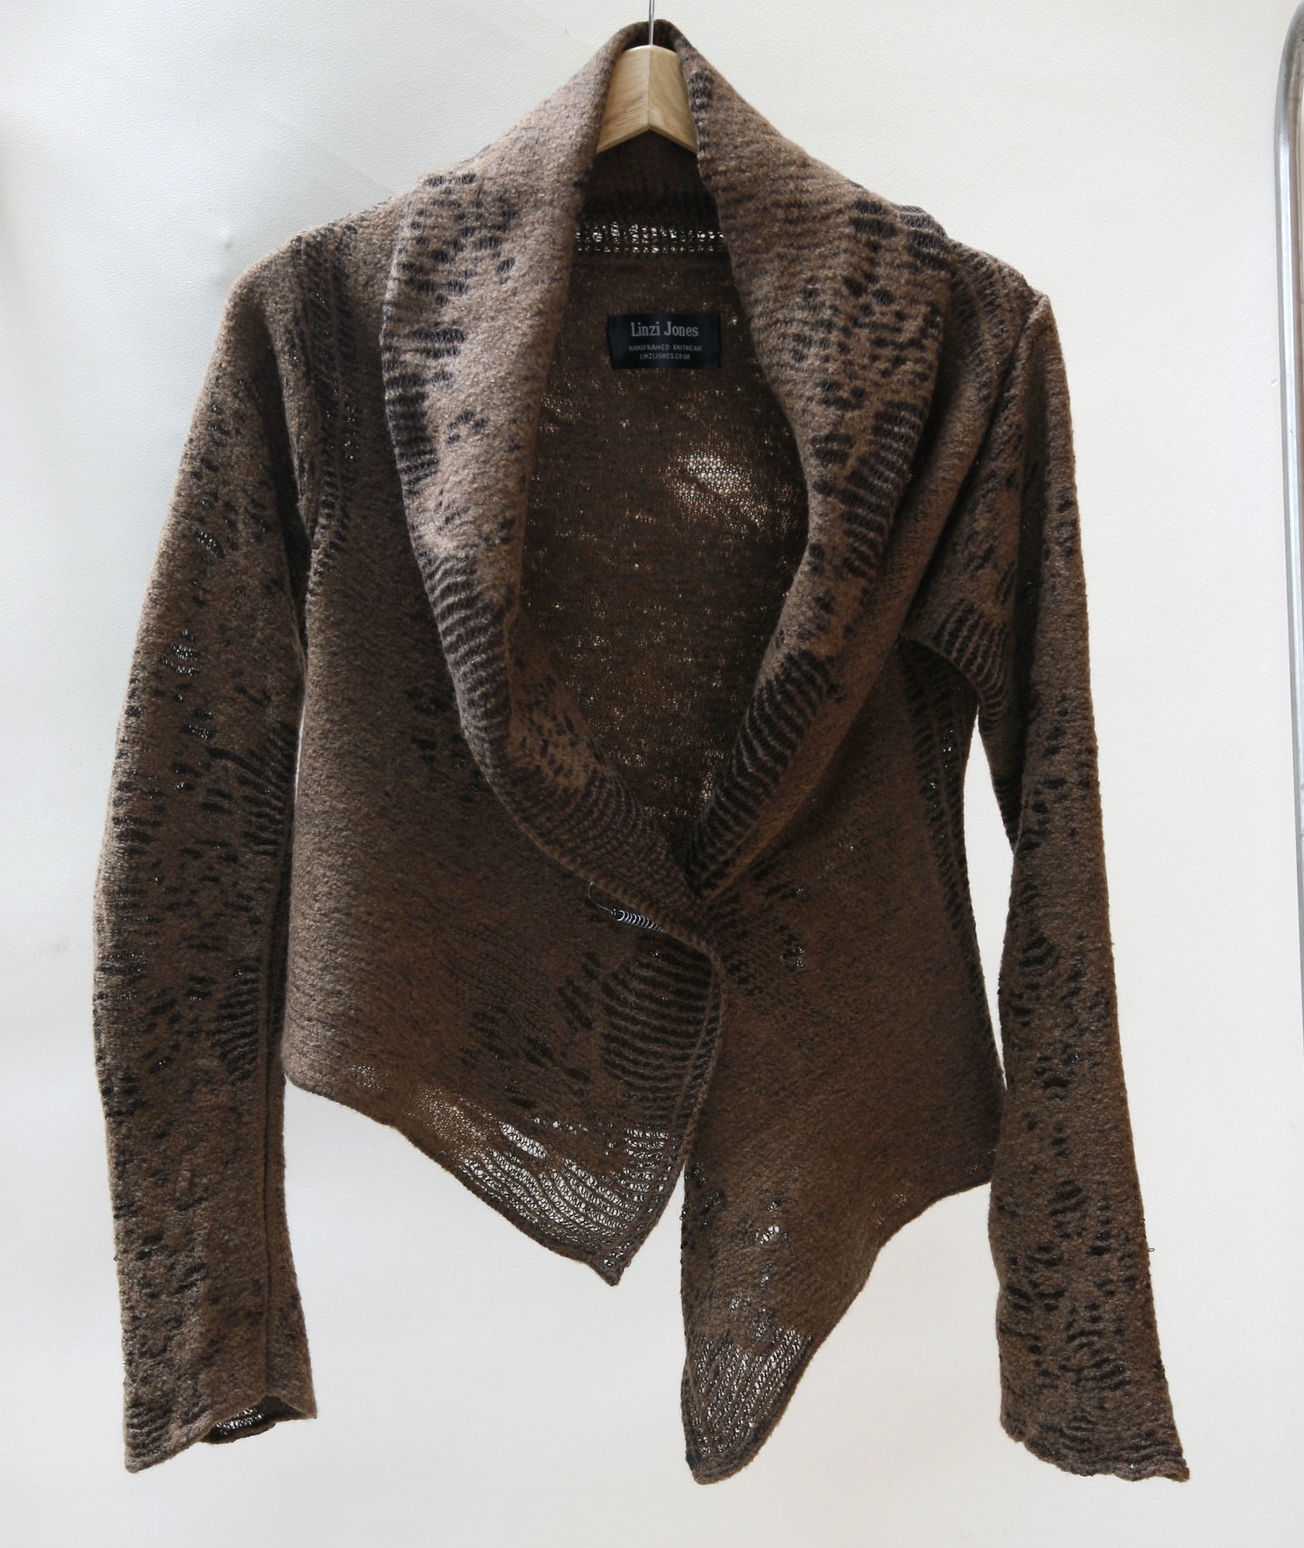 brown jacket.jpg